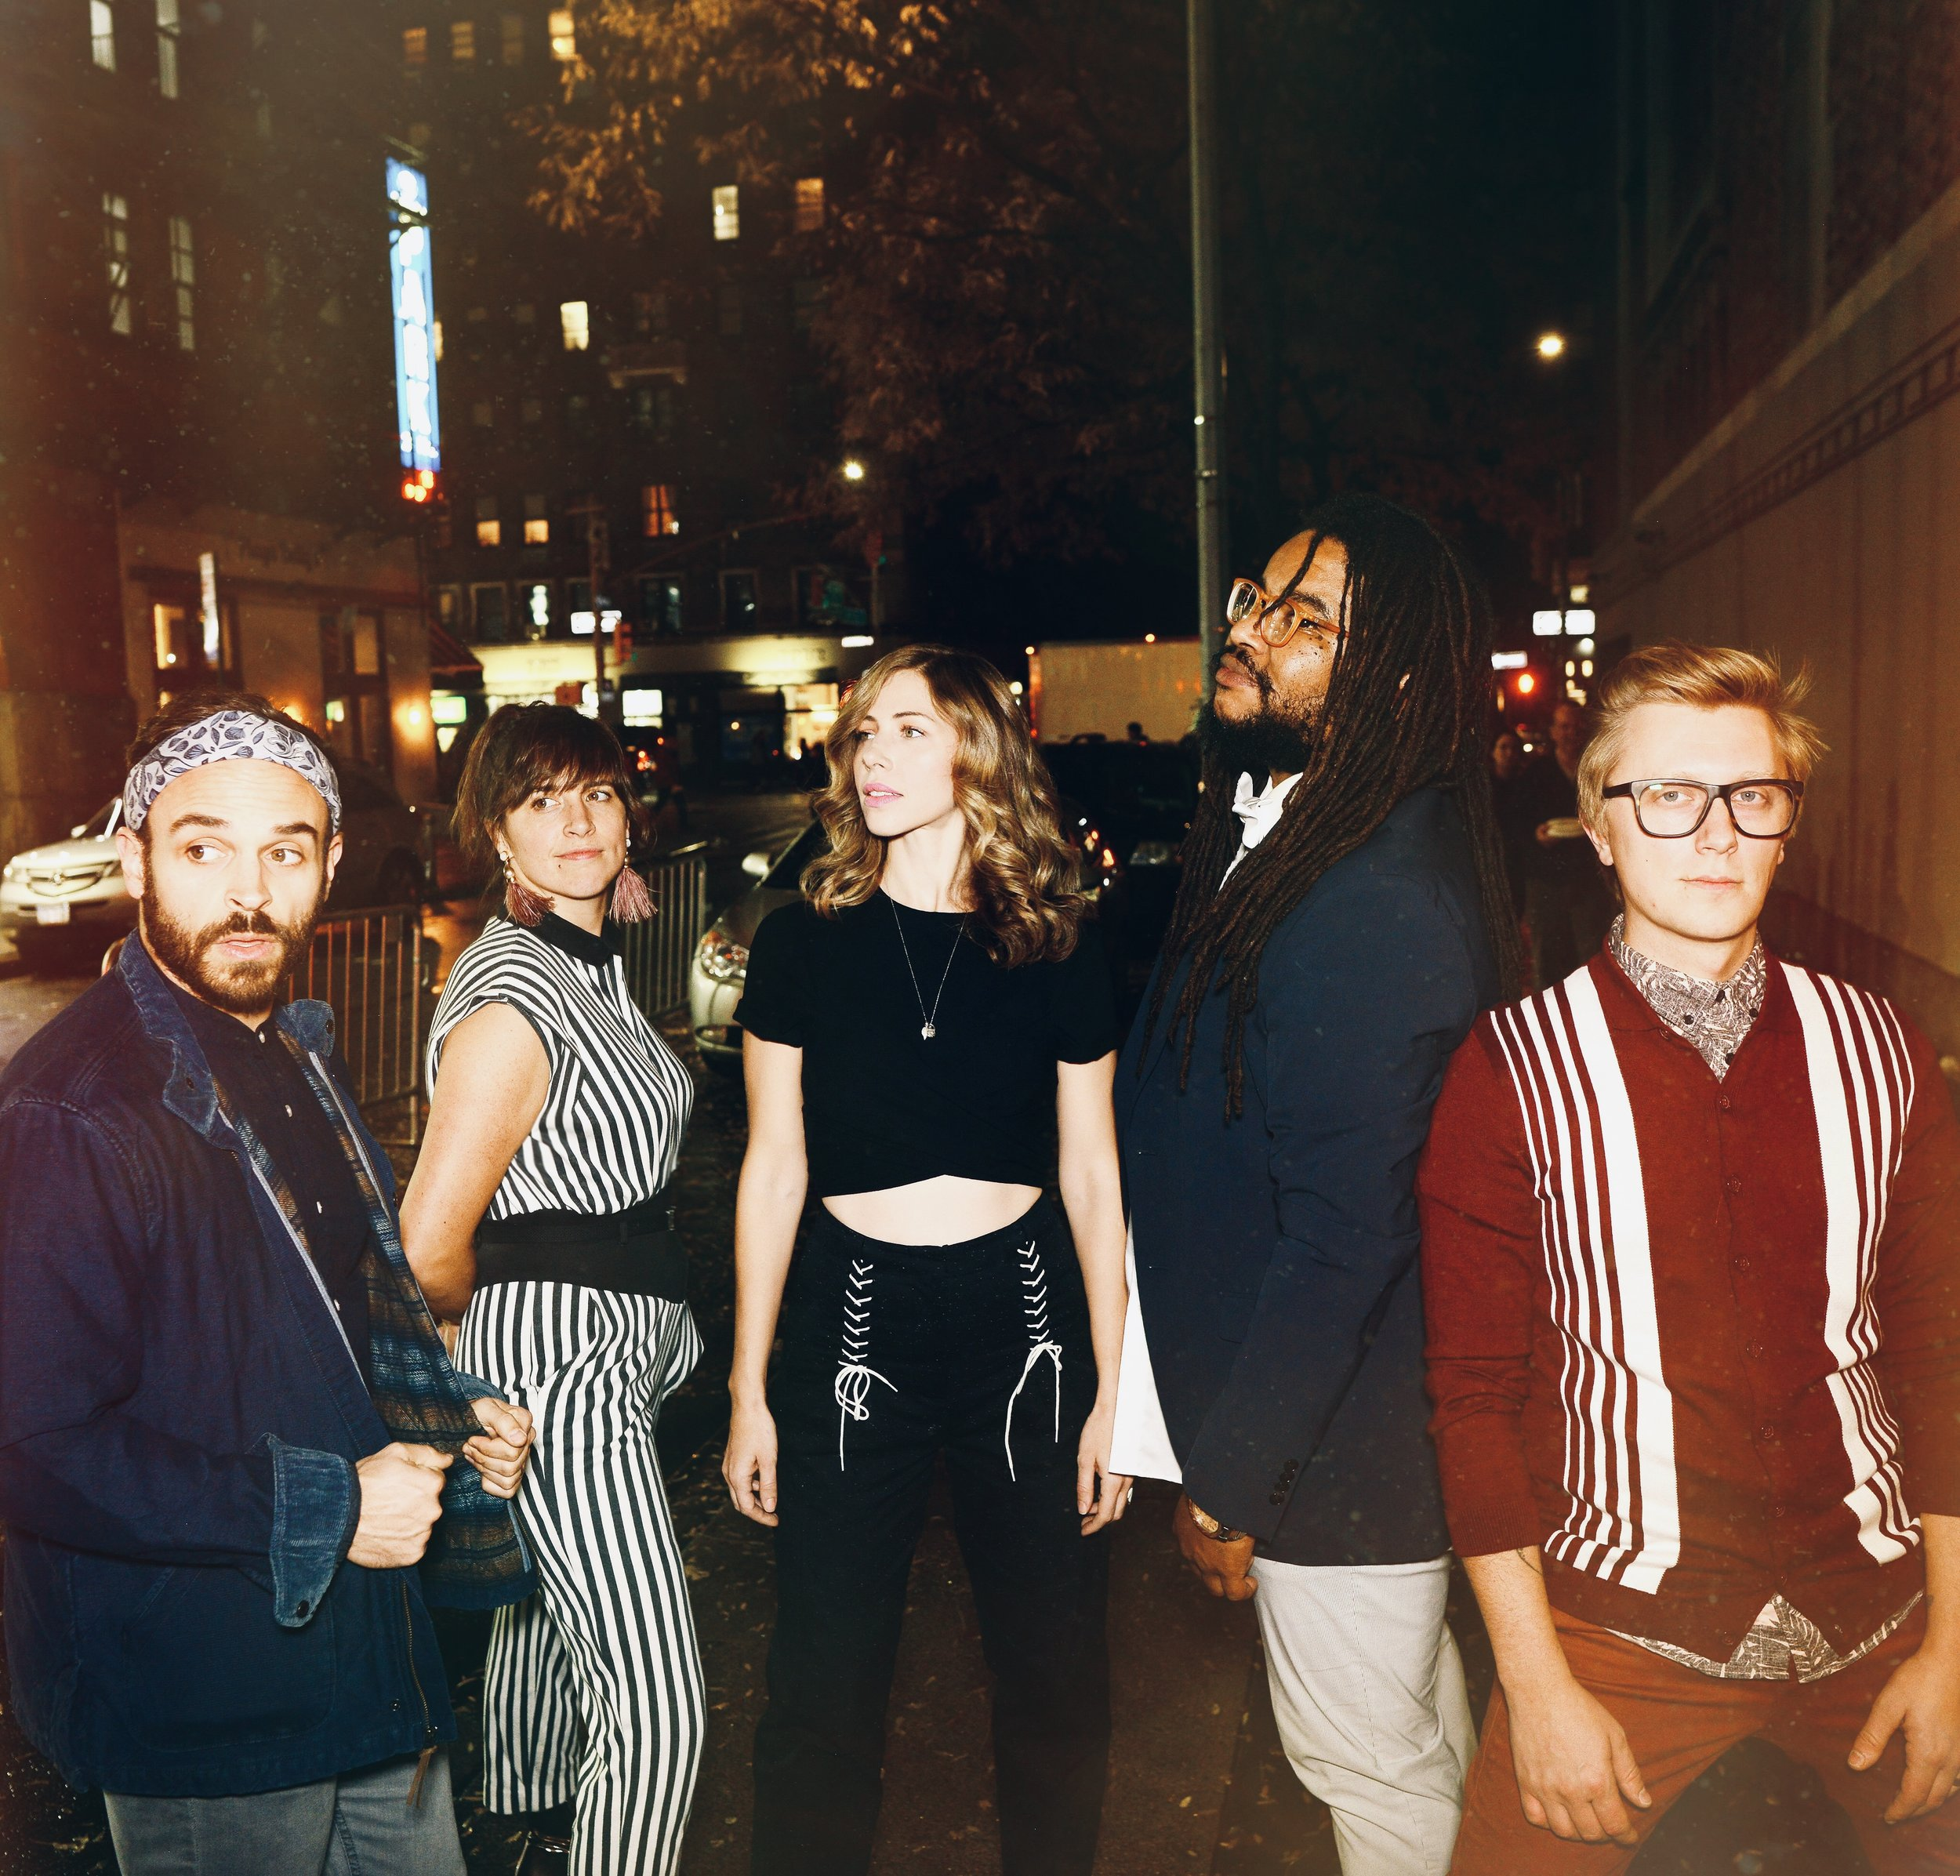 lake street dive - THURSDAY, AUGUST 8Gates: 6:00pmShow: 7:30pm$49.95